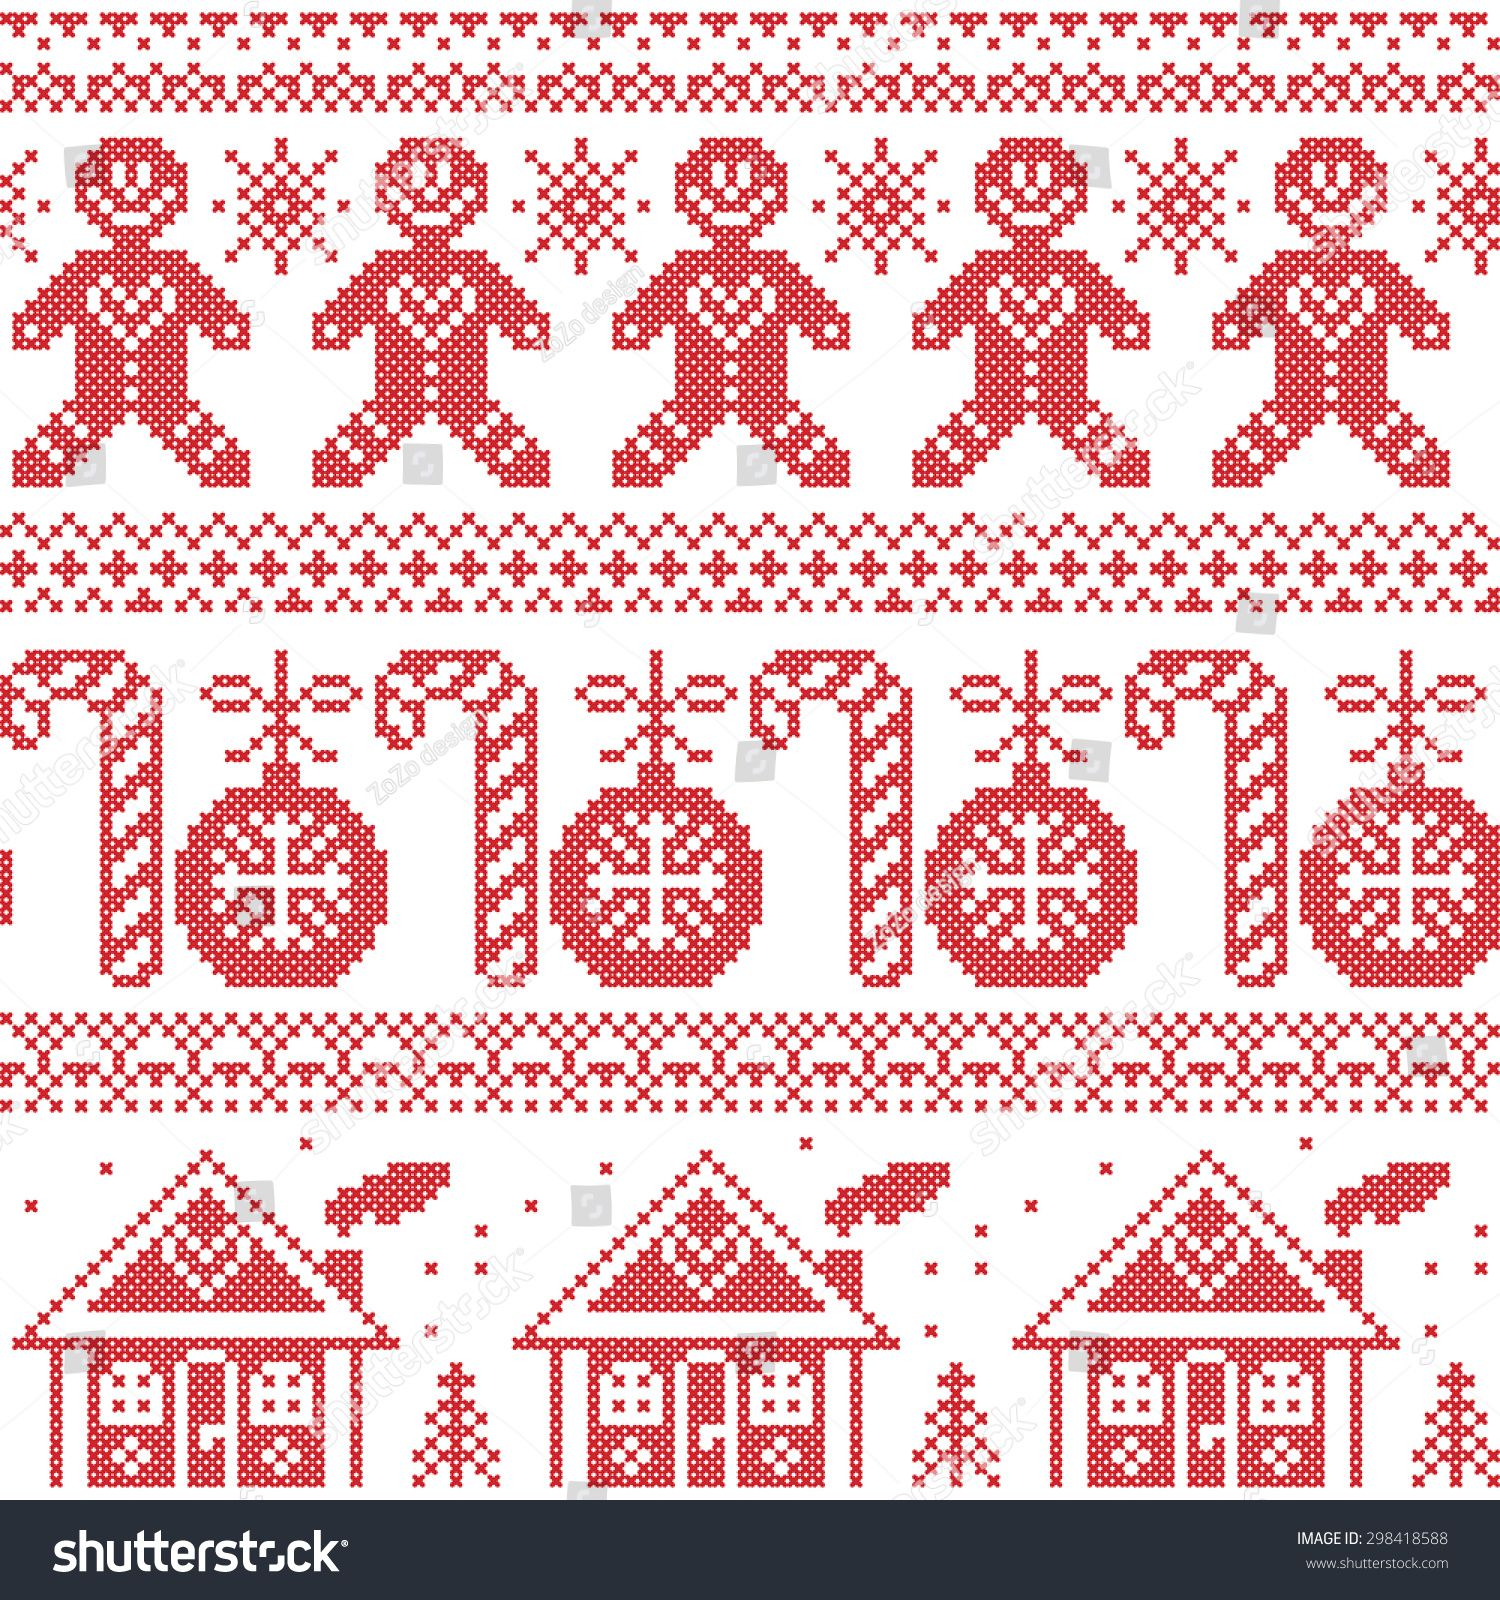 Vector Scandinavian Nordic Seamless Pattern With Ginger Bread Man, Candy,